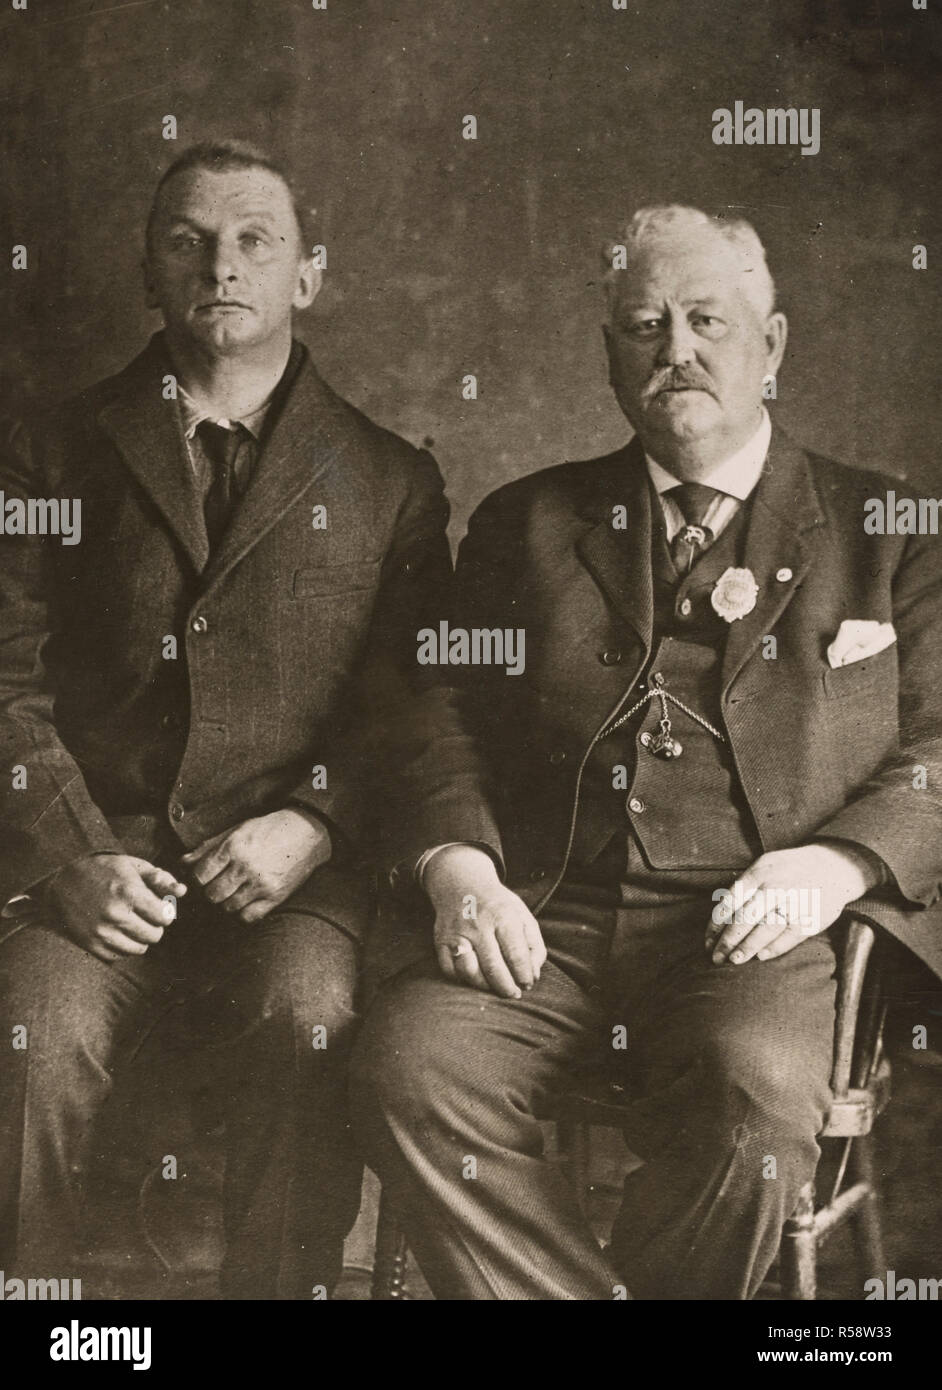 Arrest of Alien Enemies in U.S.A. - Man who attempted to destroy Canadian bridge. Sheriff George W. Ross with his prisoner, Werner Van Horn, who, it is alleged, tried to wreck a railroad bridge to deter British supply shipments to the battlefields of Europe. He said he was a German army officer ca. 1918 - Stock Image